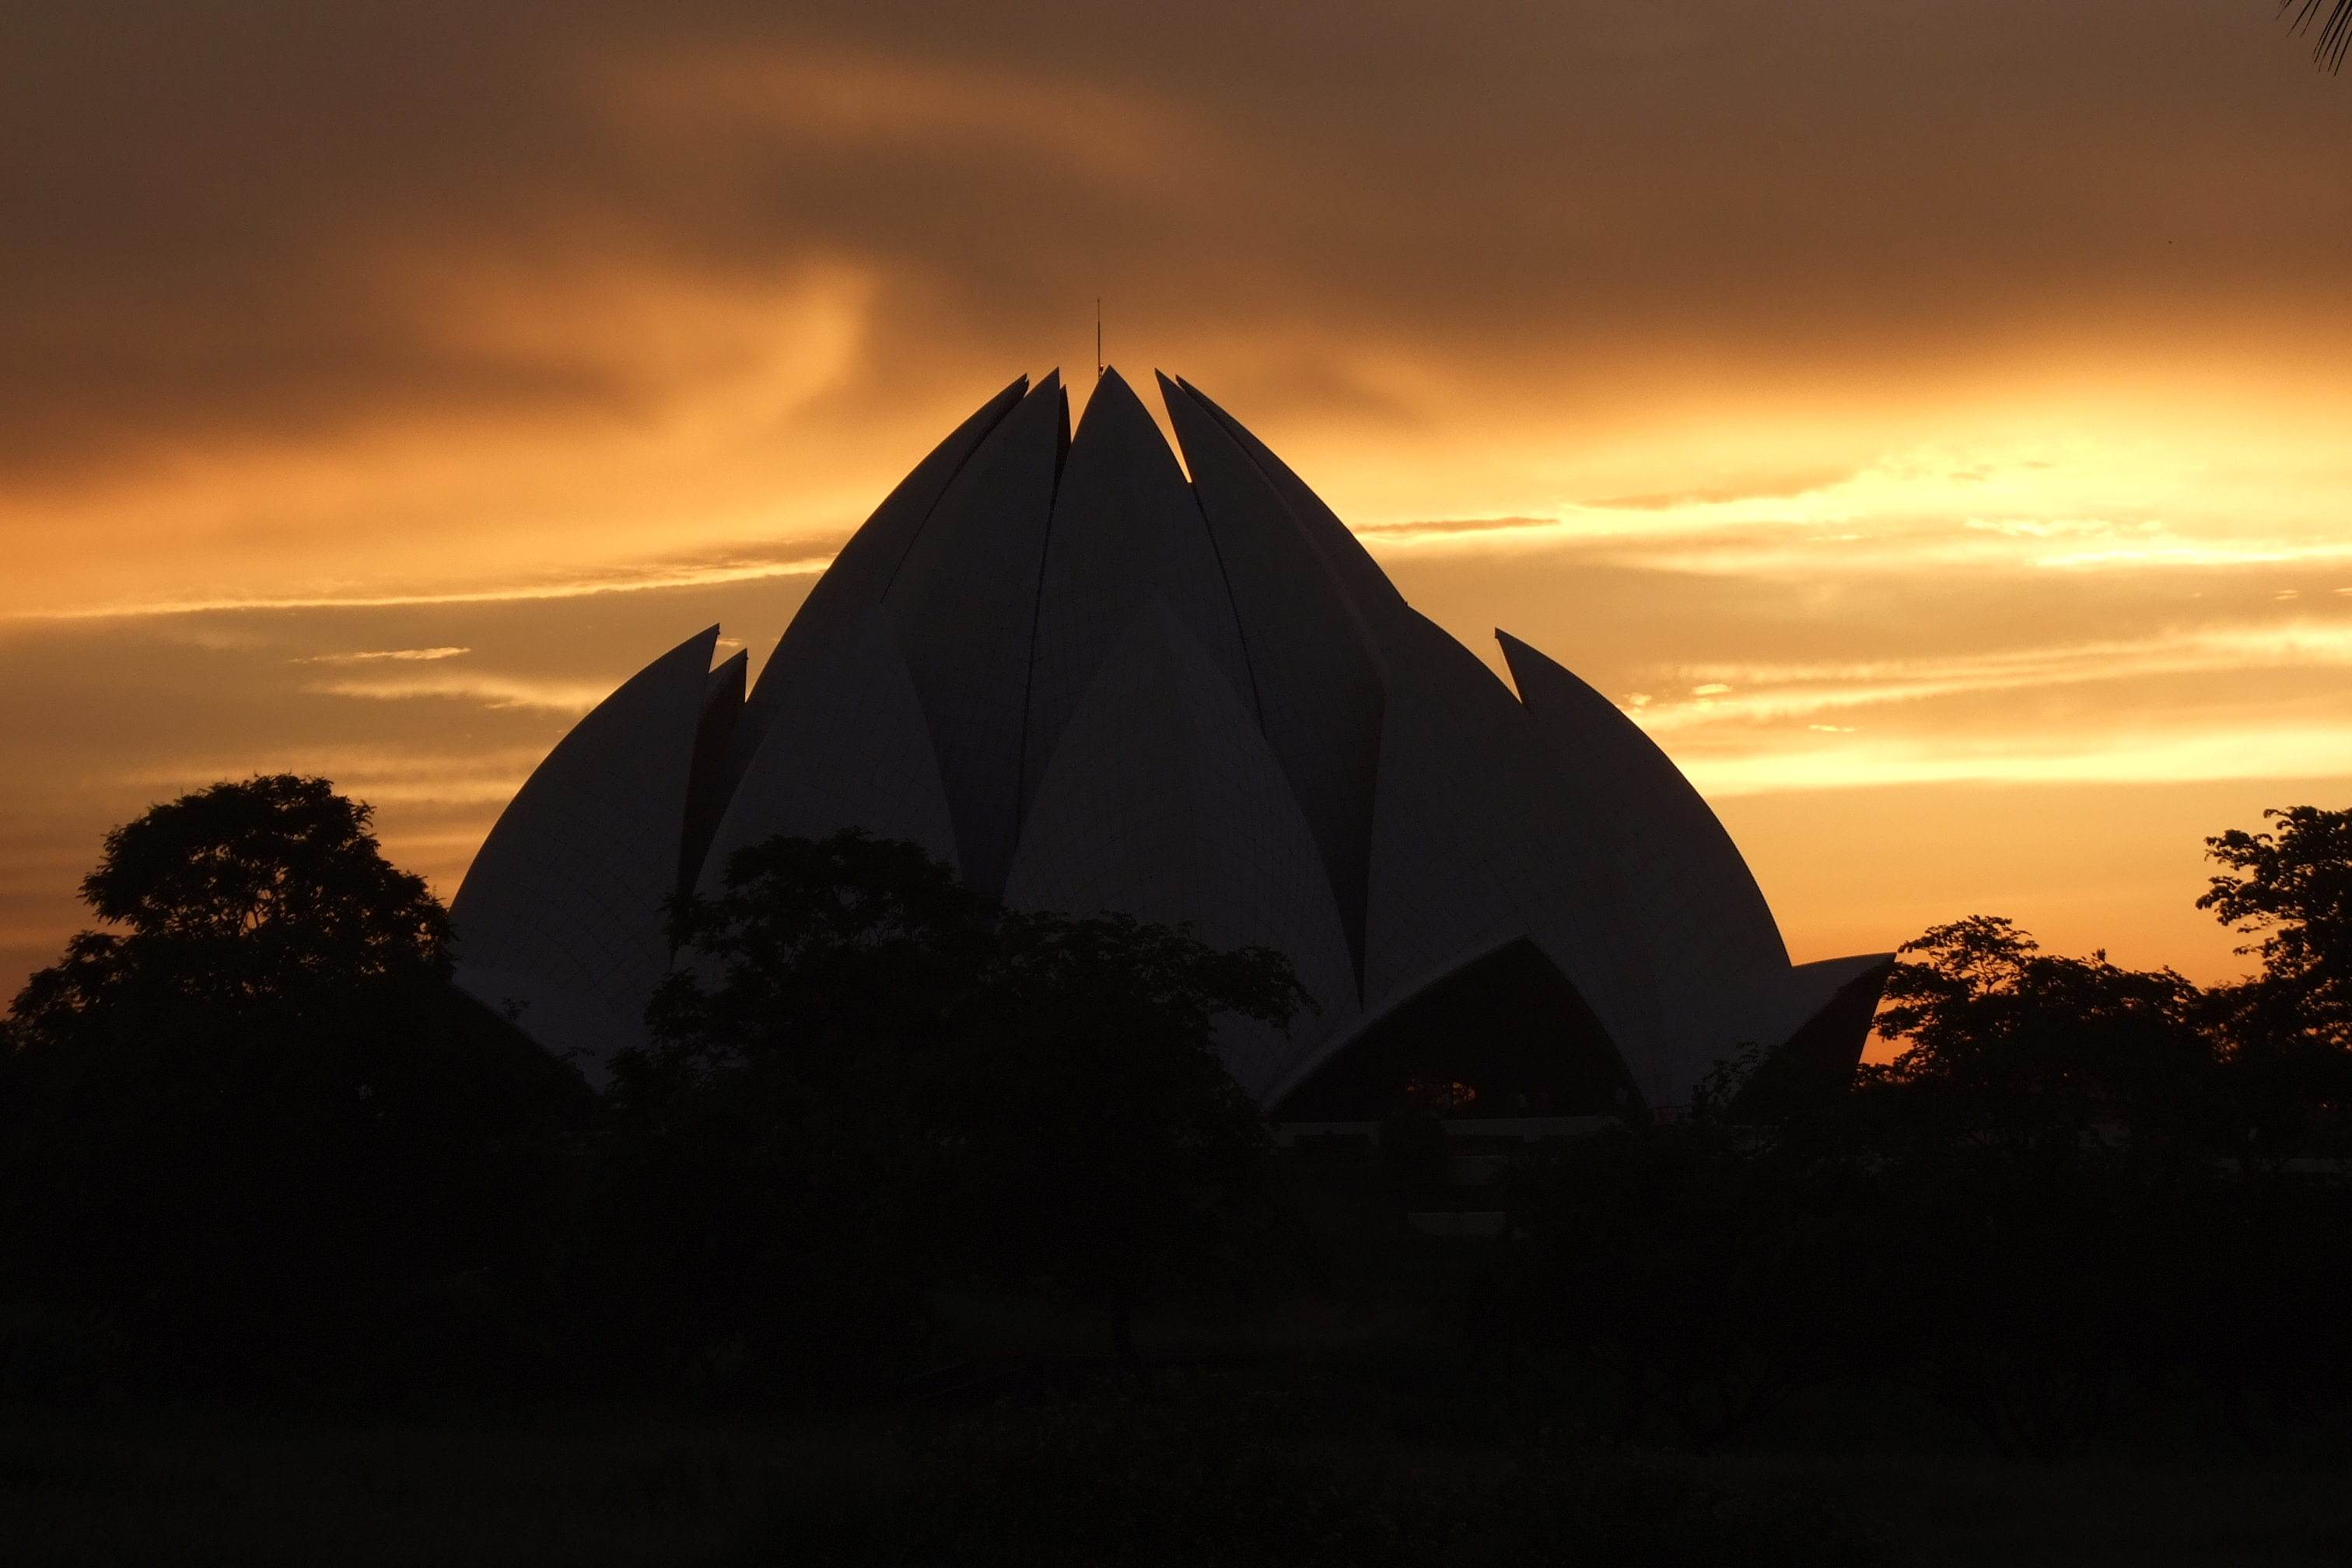 Lotus Temple Historical Facts And Pictures The History Hub